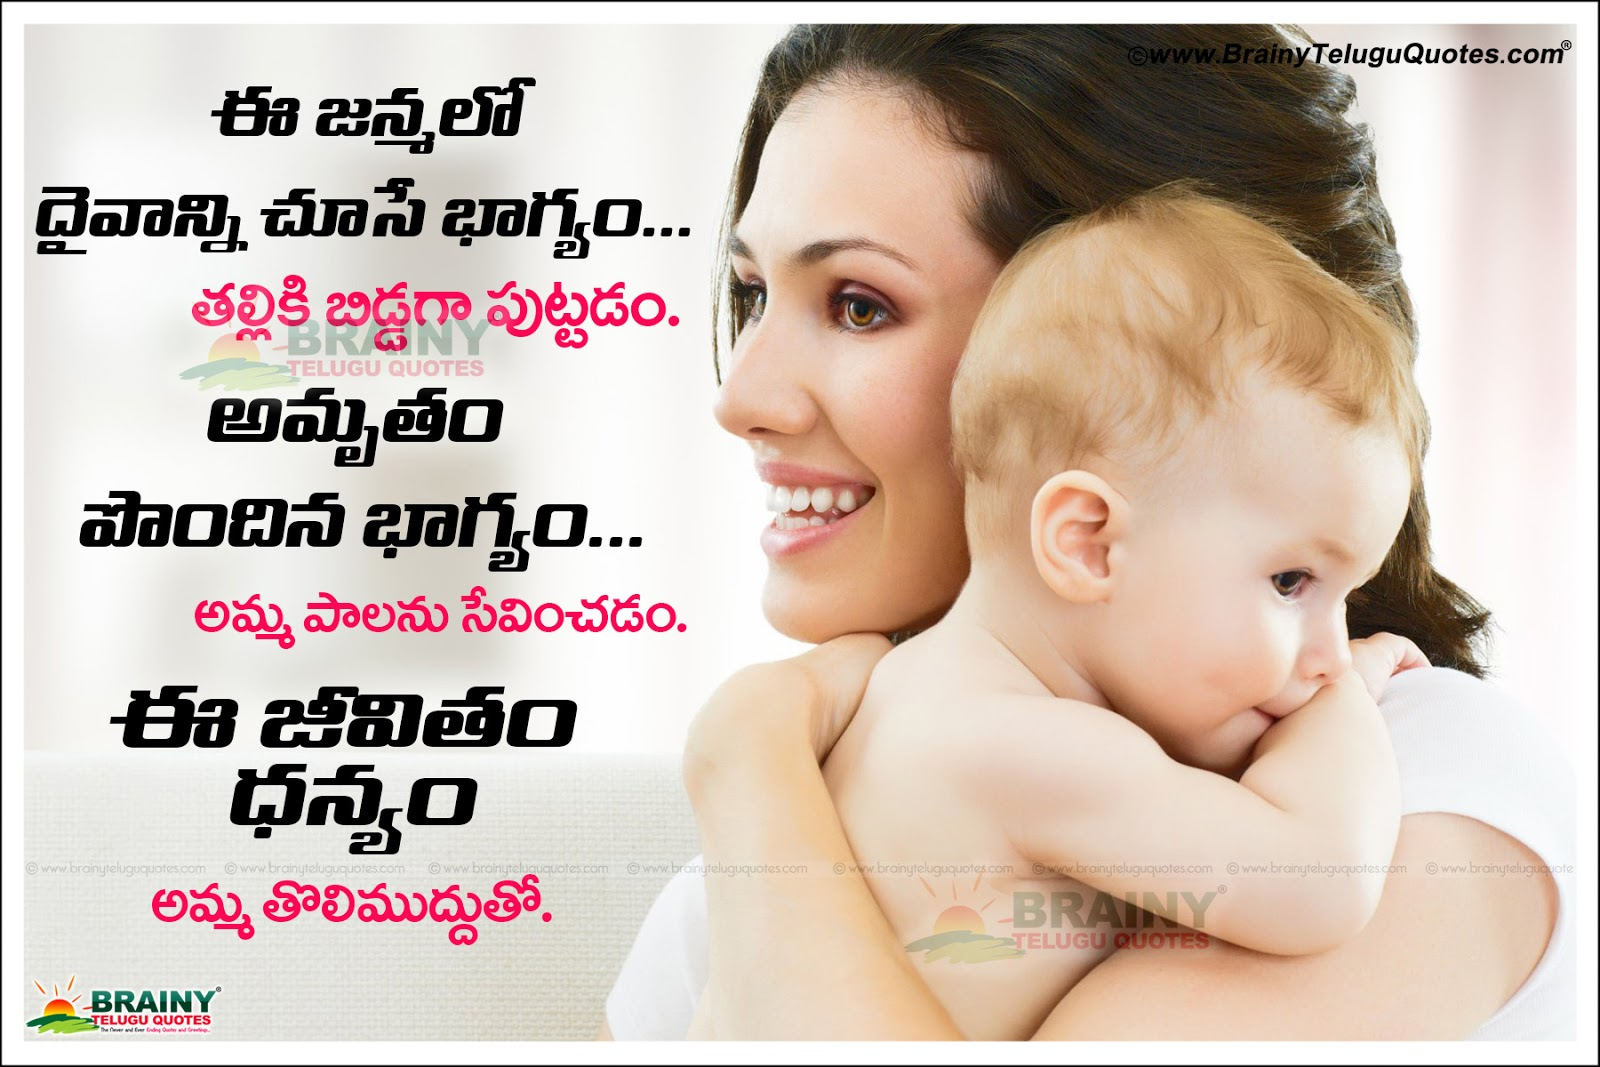 Mother And Son Quotes In Hindi: BrainyTeluguQuotes.comTelugu Quotes